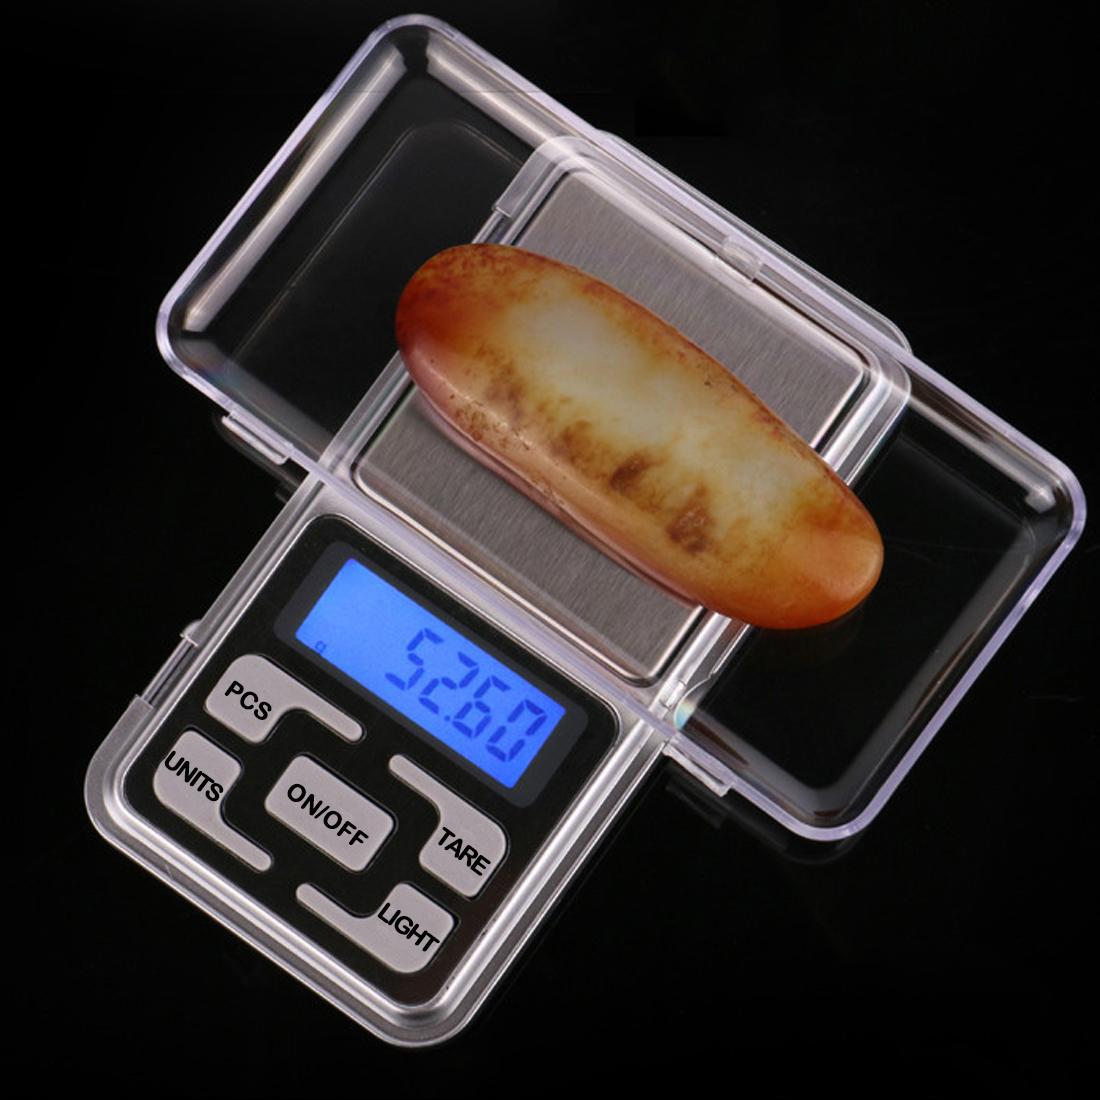 Jewelry Electronic Scales 200g/0.01g Mini Precision Digital Scales For Gold Bijoux Sterling Silver Scale 0.01 Weight